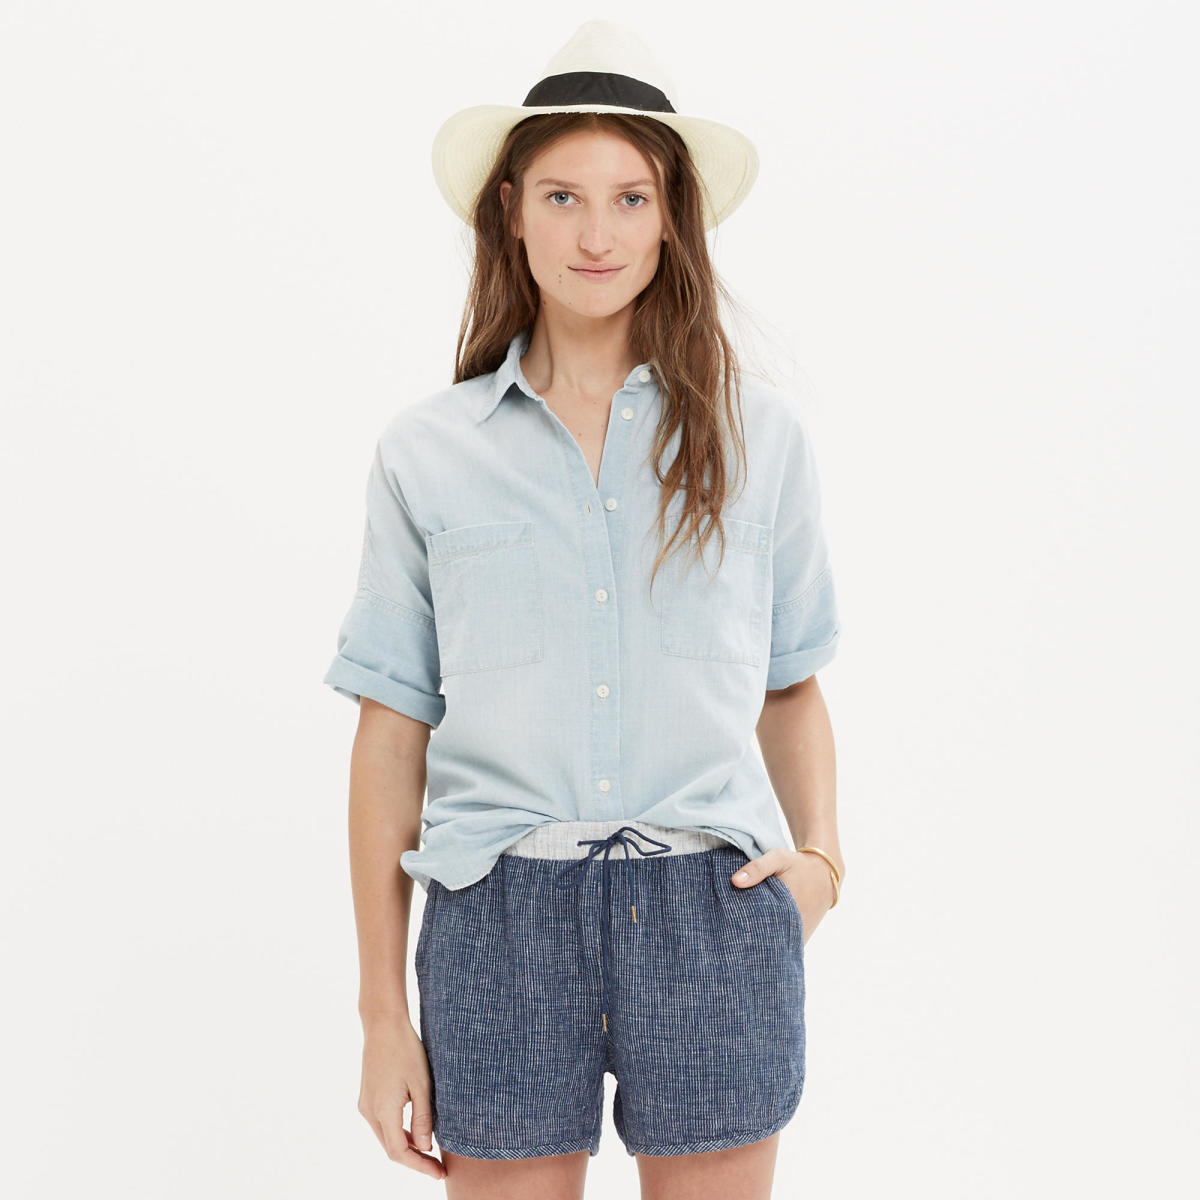 Chambray Courier Shirt, $75, available at Madewell.